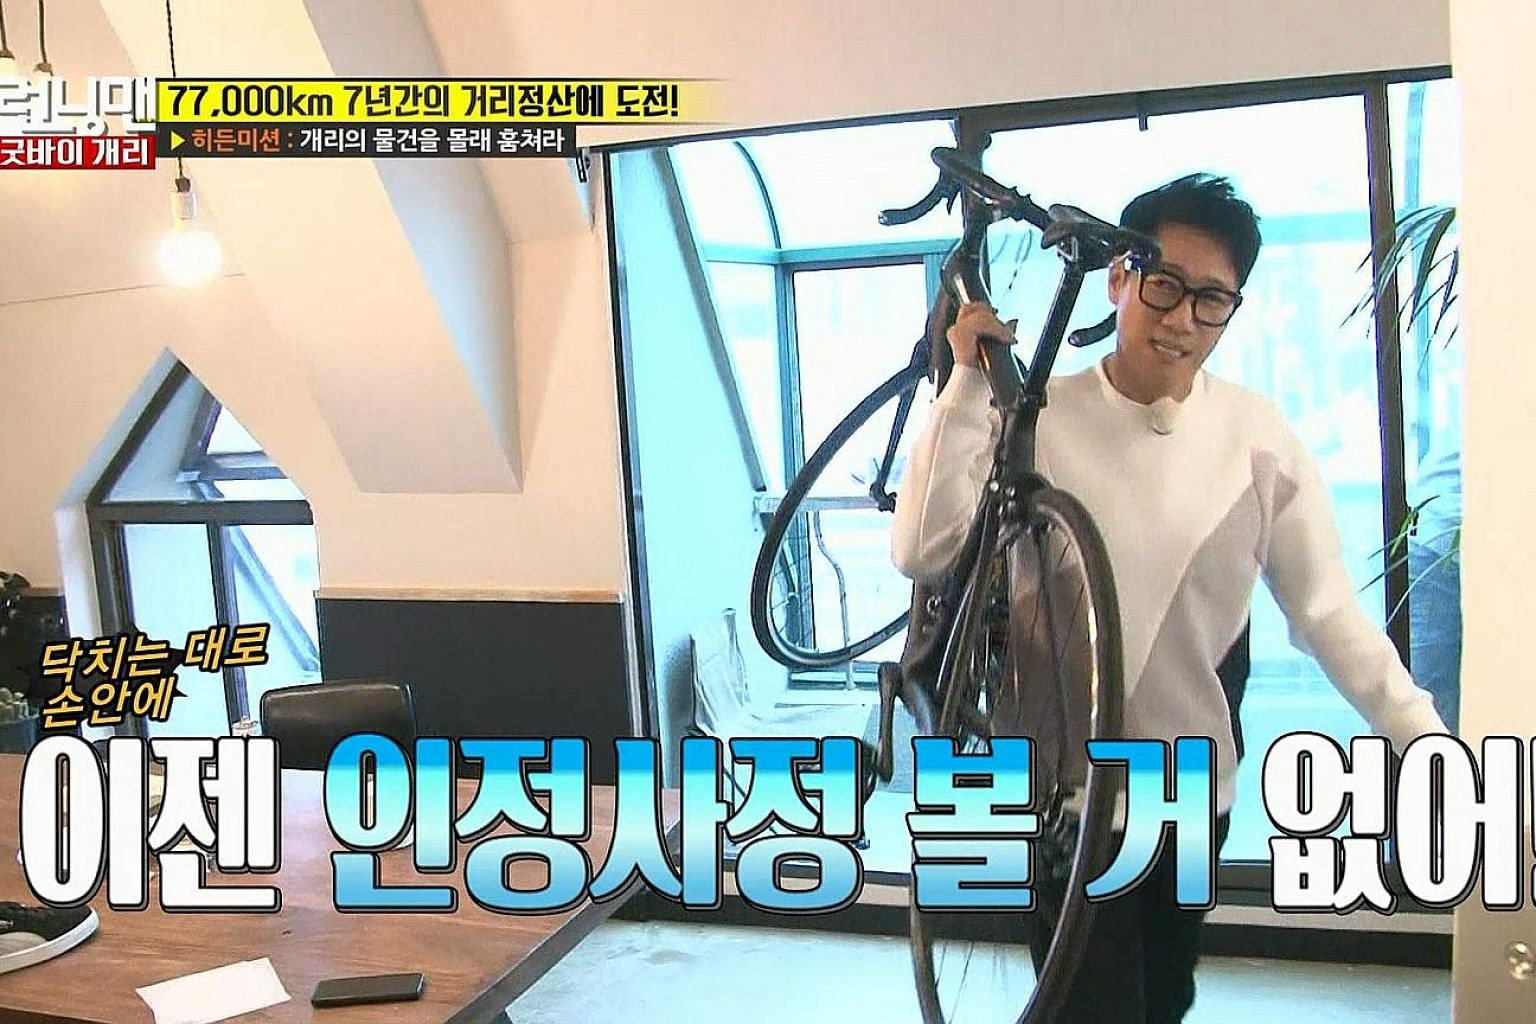 Running Man star Jee Seok Jin (above) trying to steal a bicycle from leaving member Gary.